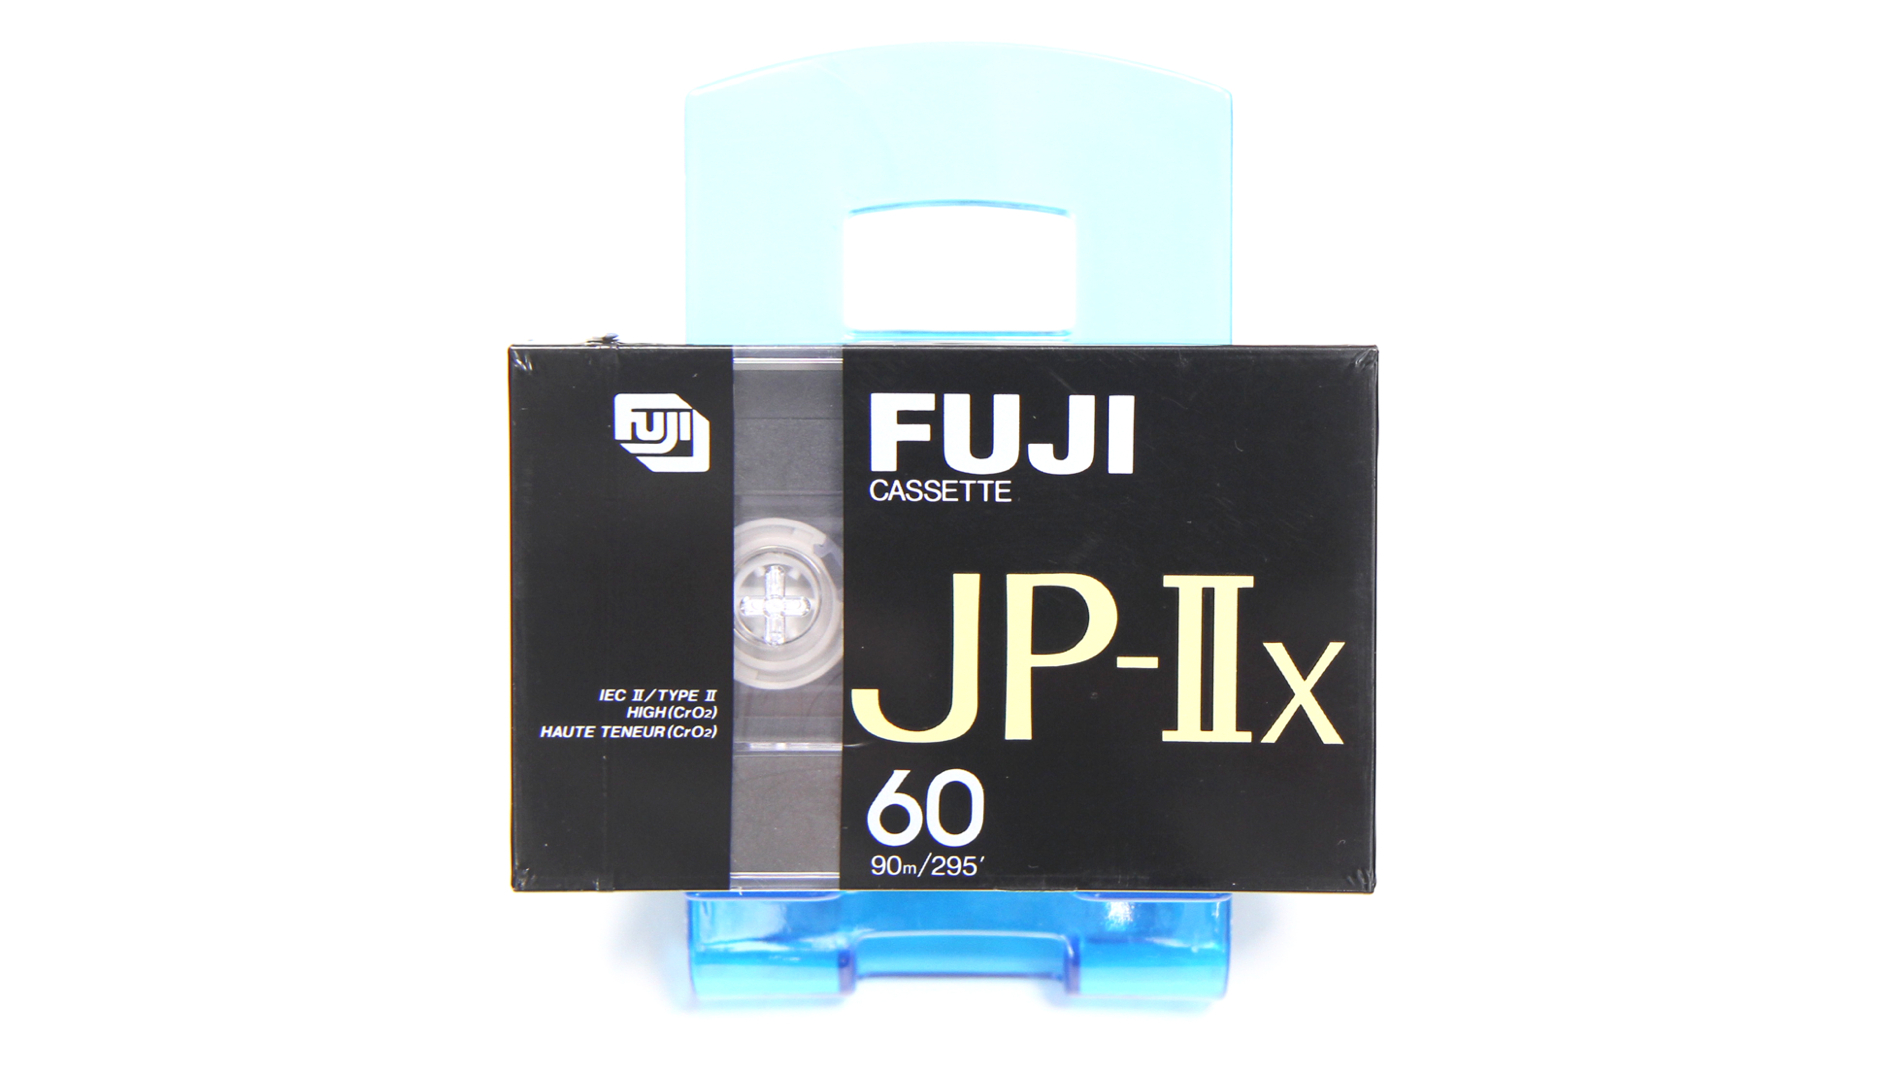 FUJI JP-IIx 60 Position Chrome